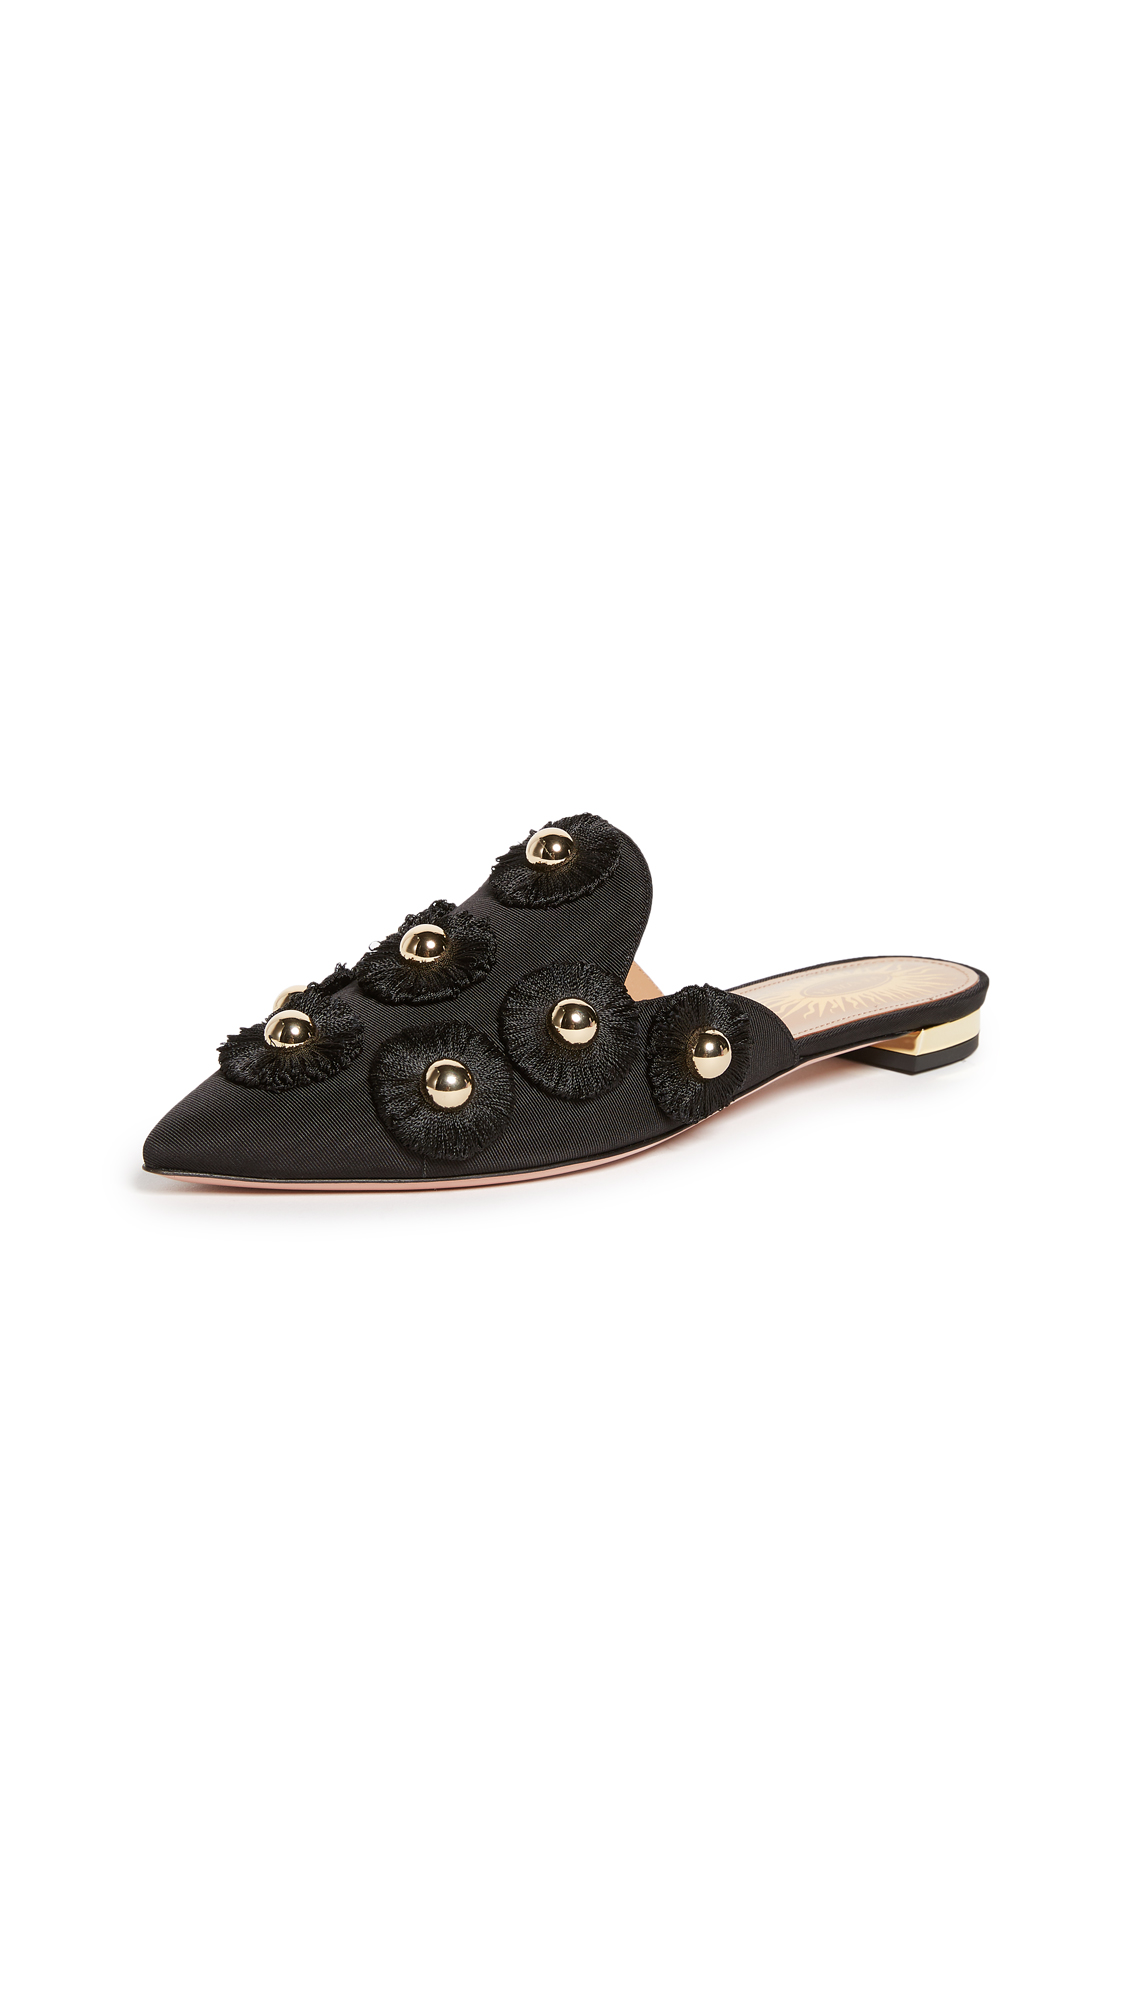 Aquazzura Sunflower Flats - Black